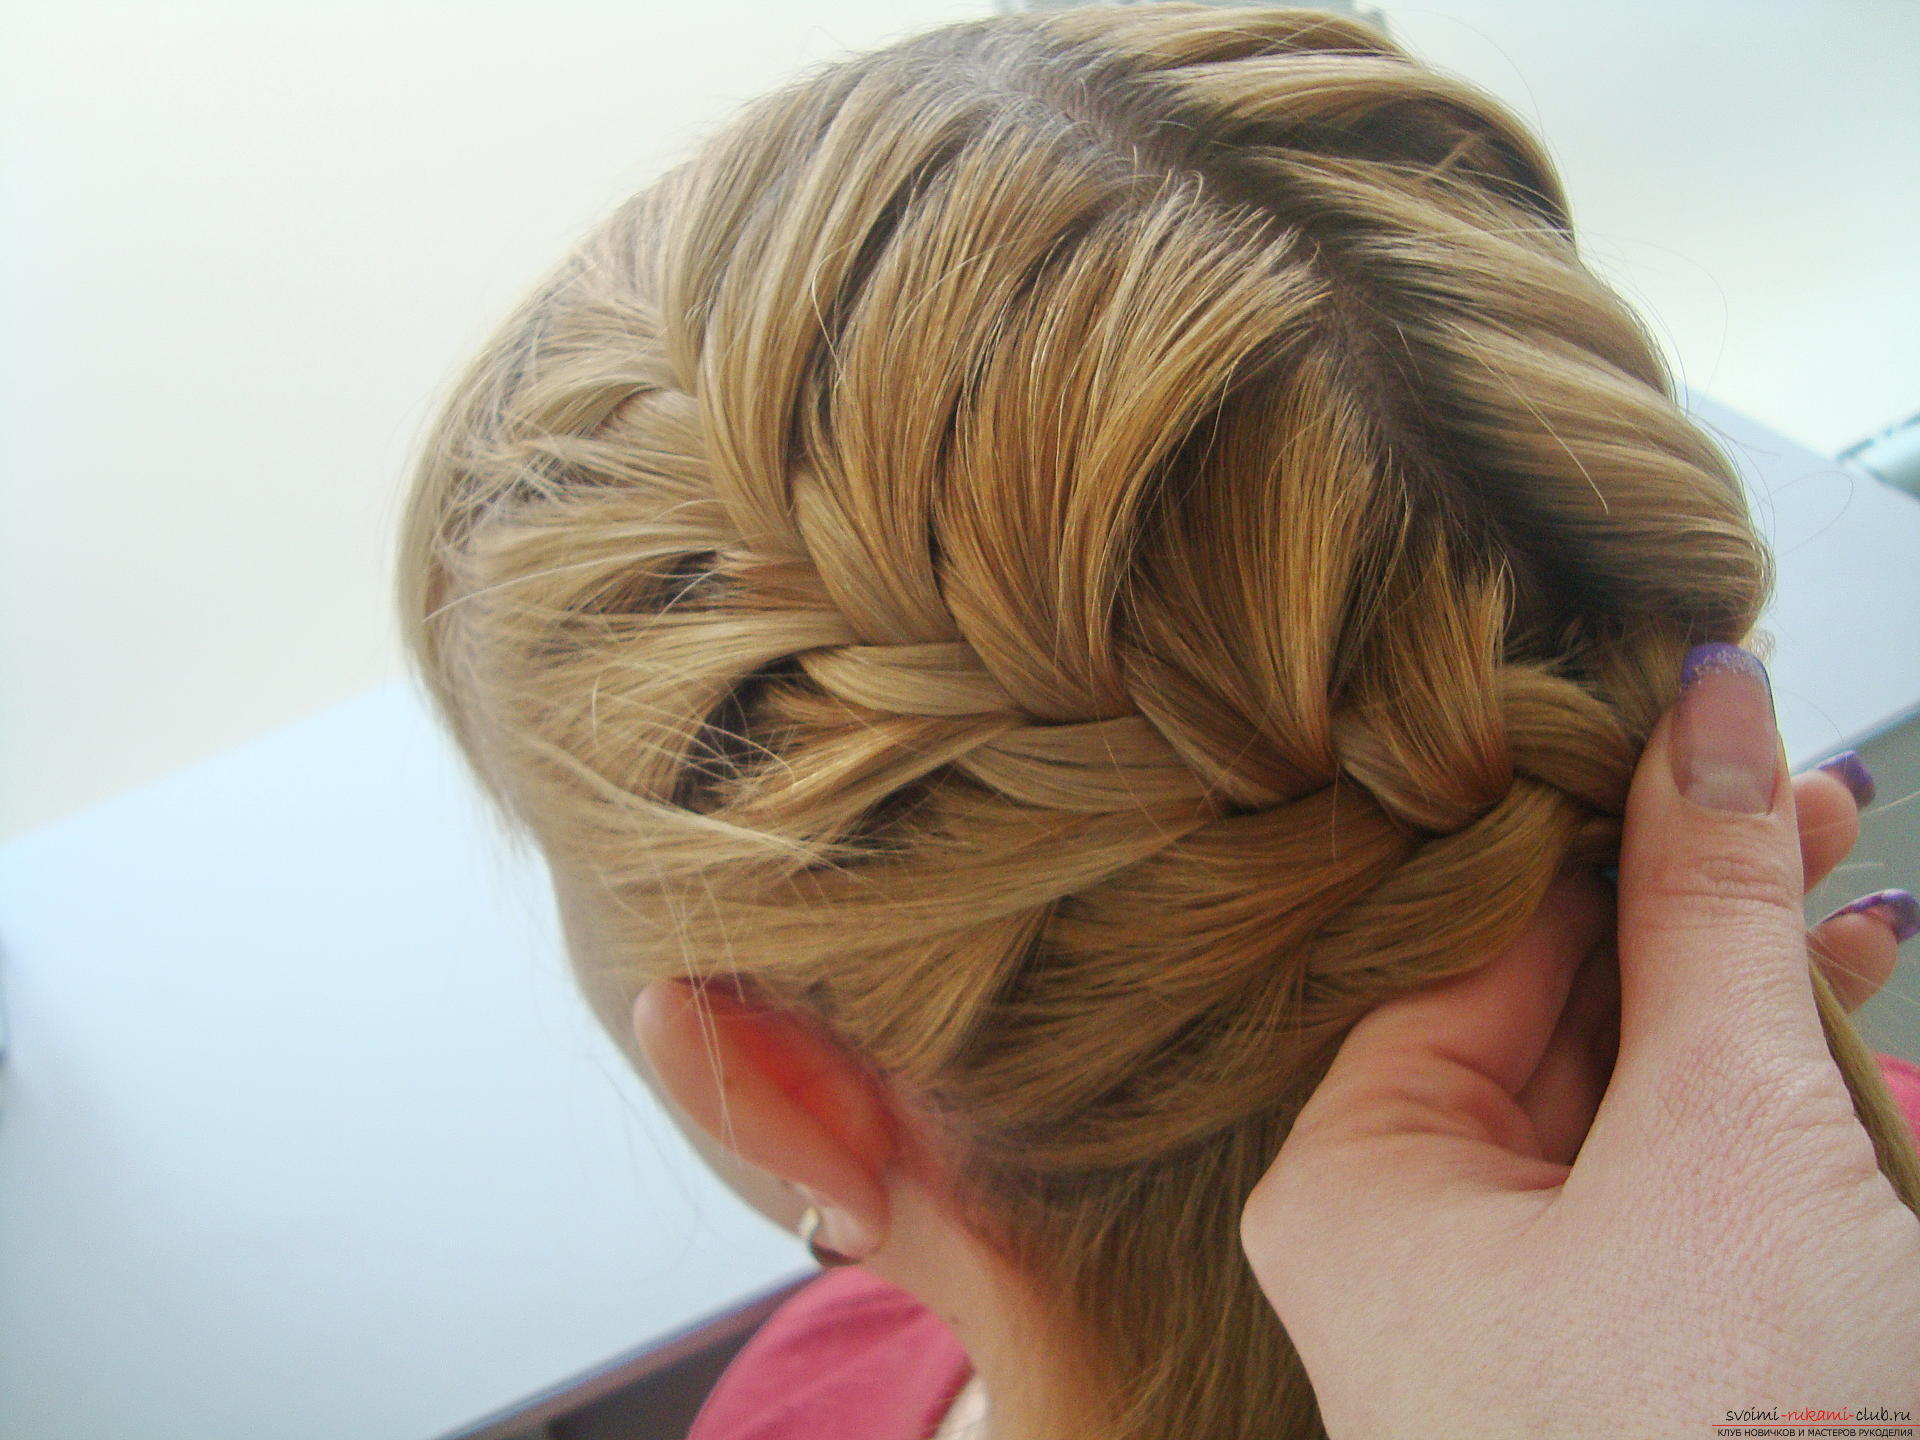 Master class hairstyles with photos will help you create the most beautiful hairstyle for the new year. Hairstyles for medium hair on the basis of the braid will last the whole evening and porozyat originality .. Picture № 9